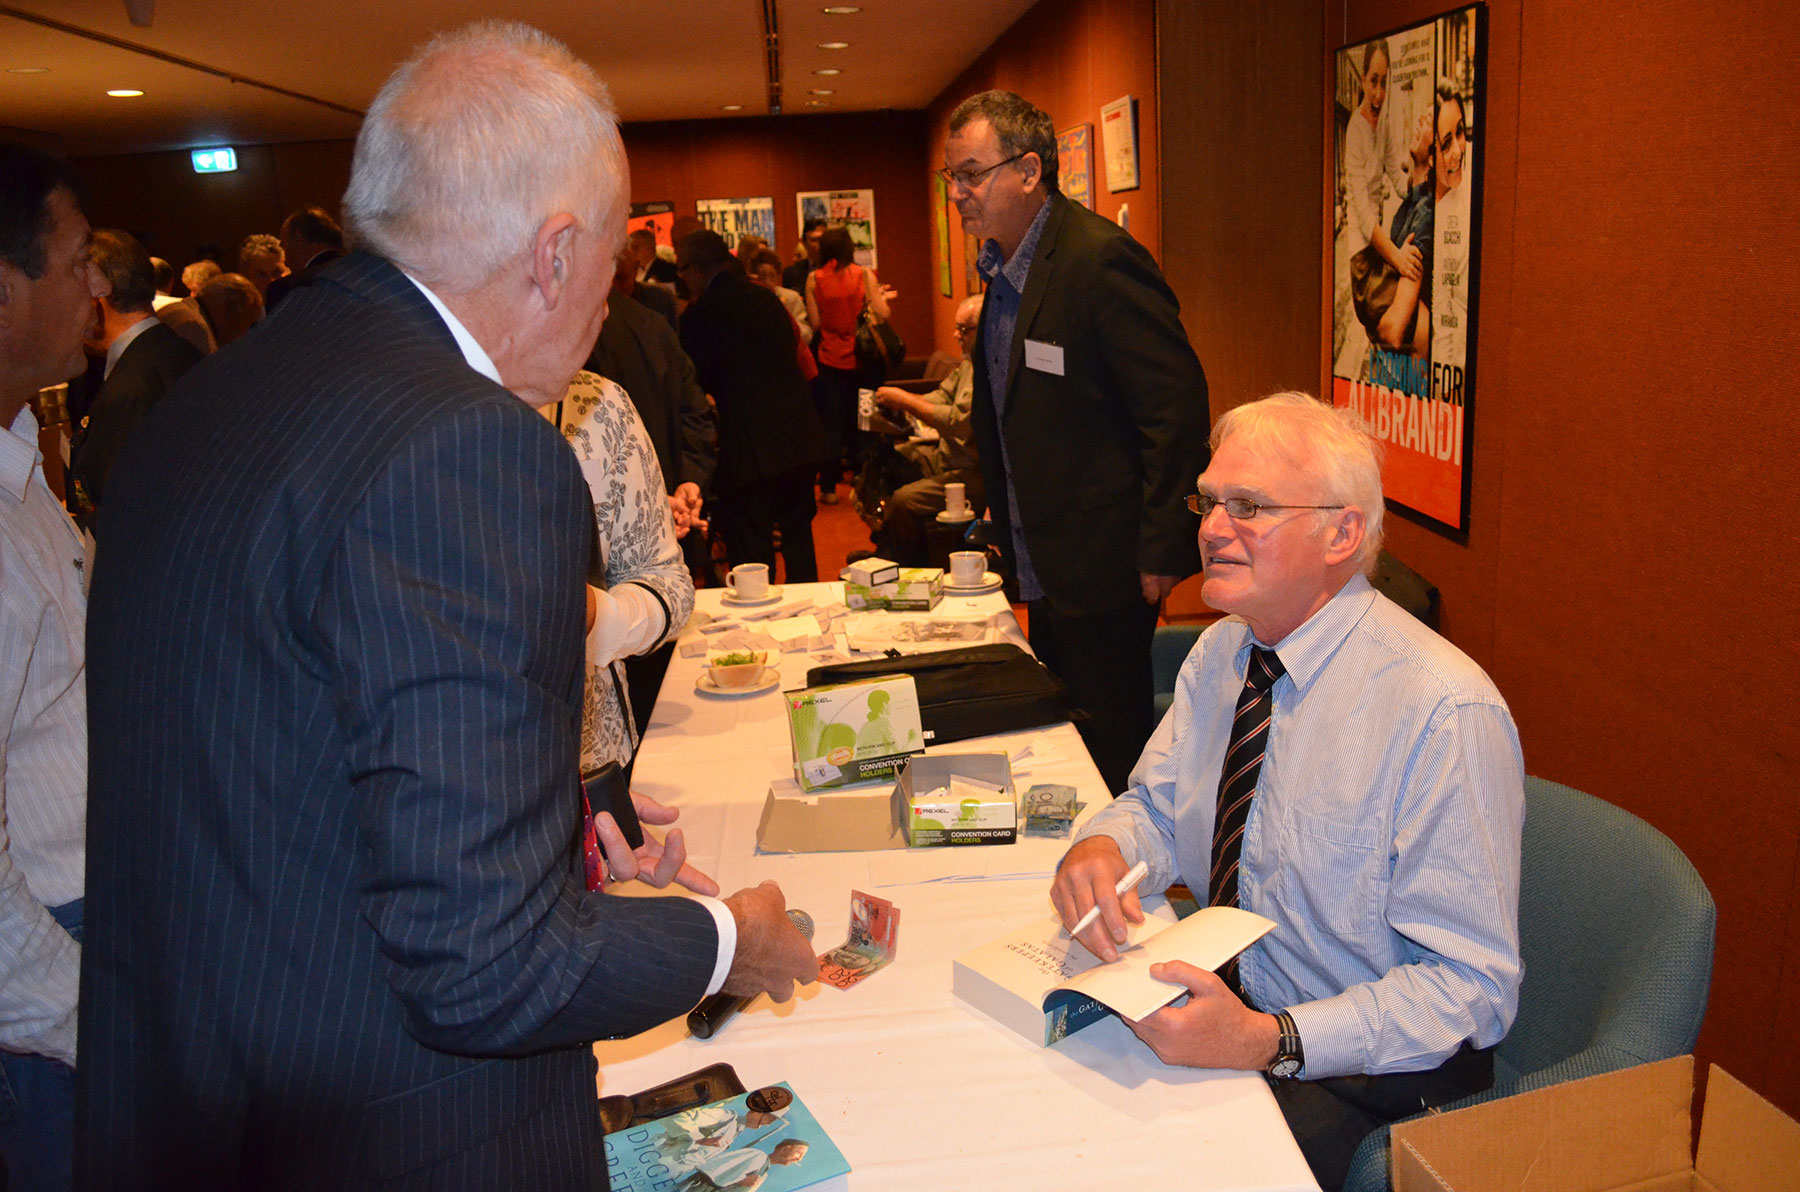 07 Symposium 6th Dec 2012. Brian Taaffe Signing Books